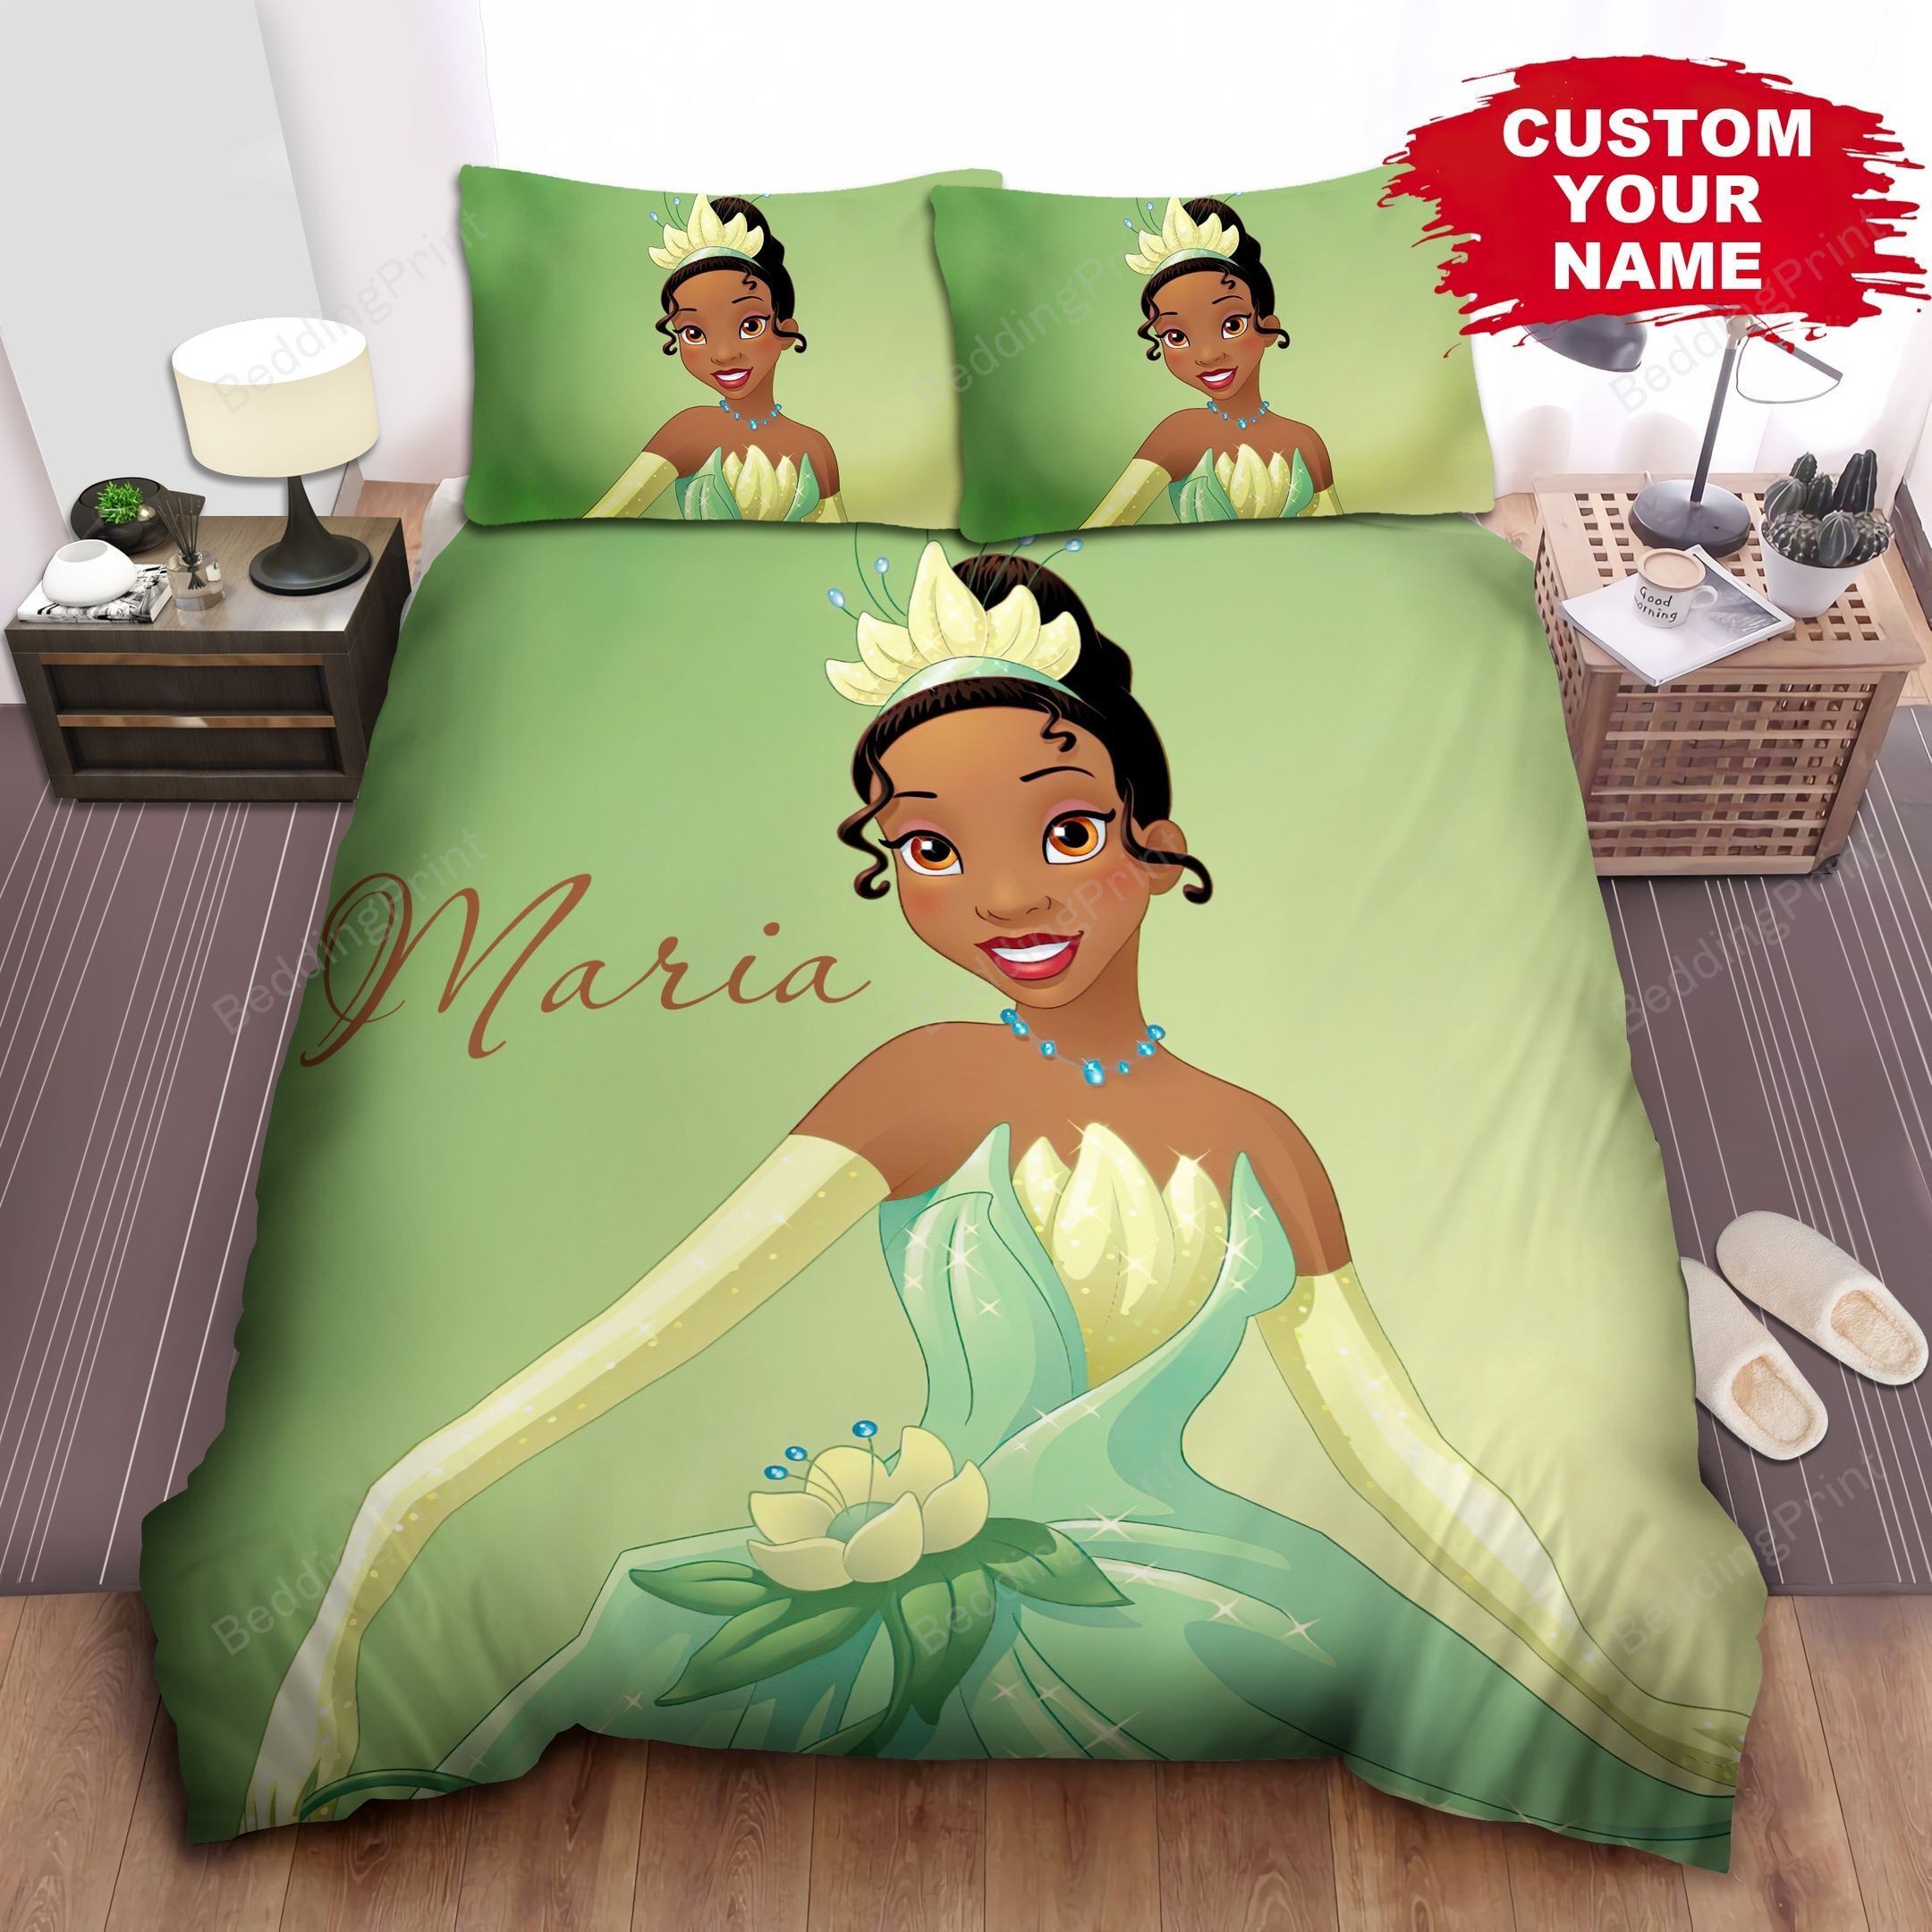 Personalized Disney Princess Tiana In Glorious Dress Bed Sheet Spread Duvet Cover Bedding Sets